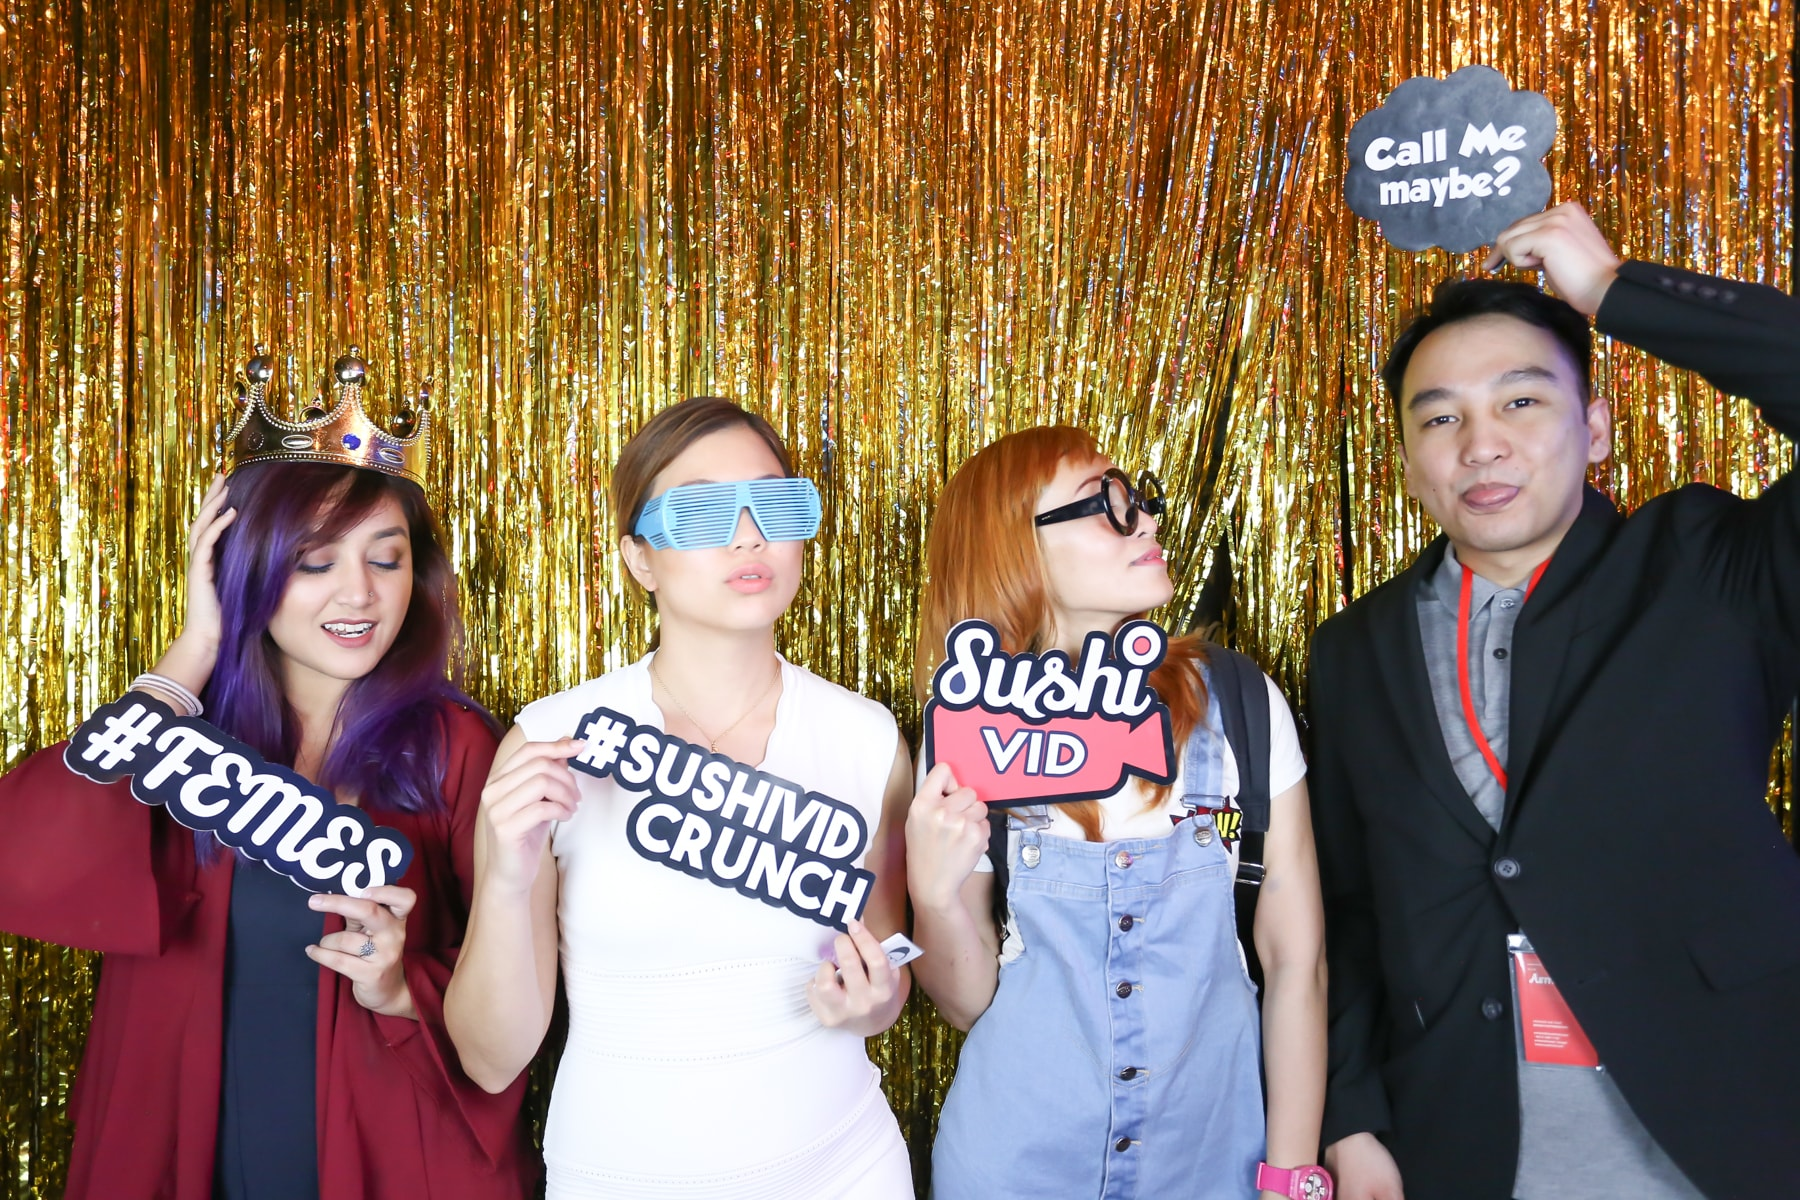 Sushivid+crunch+tagbooth+12